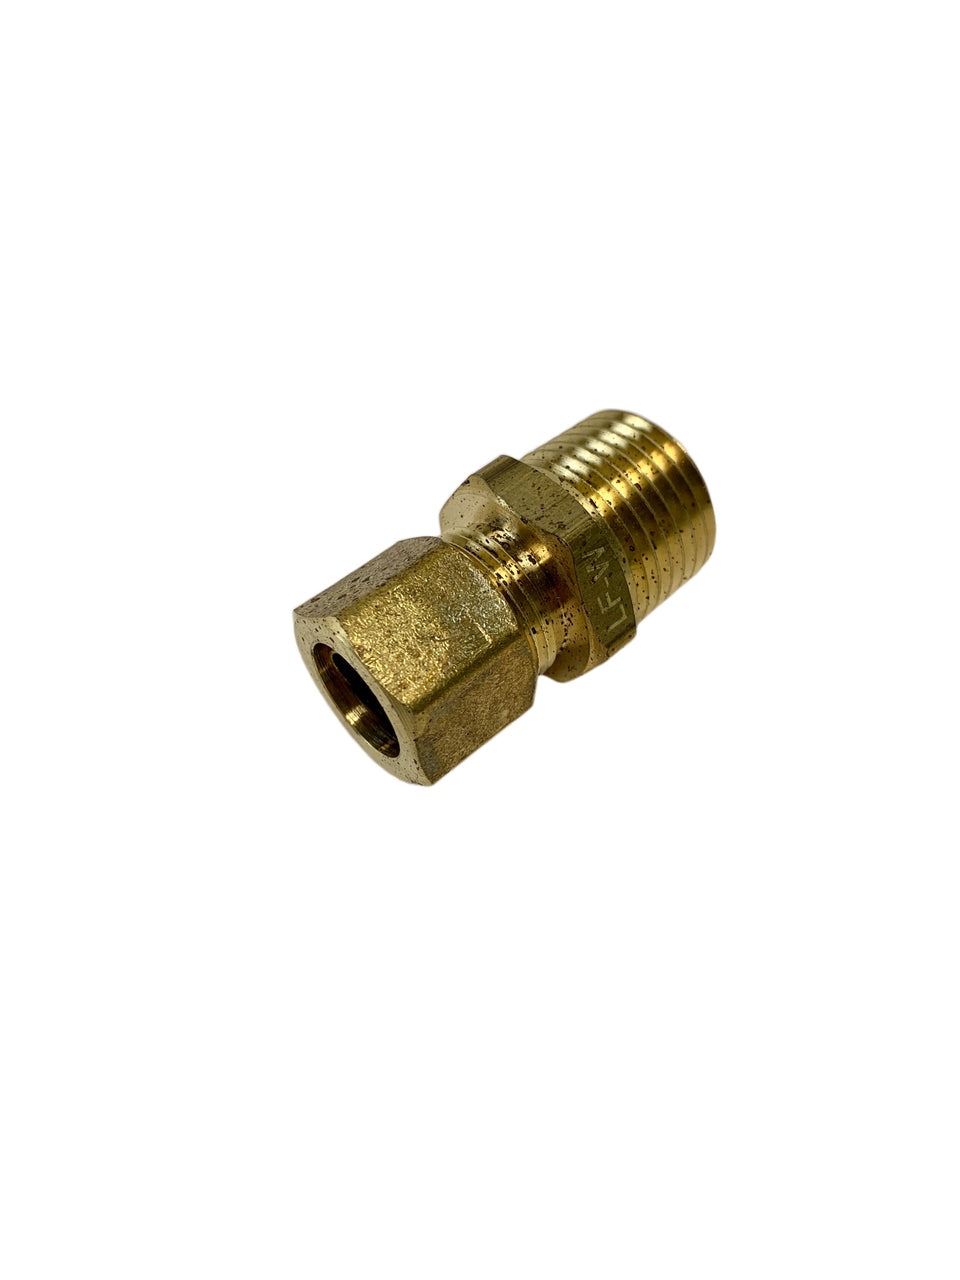 "Brass P-68-88-LF Tube to Male Straight Pipe 1/2"" x 1/2"" Adapter Fitting *Qty 10*"